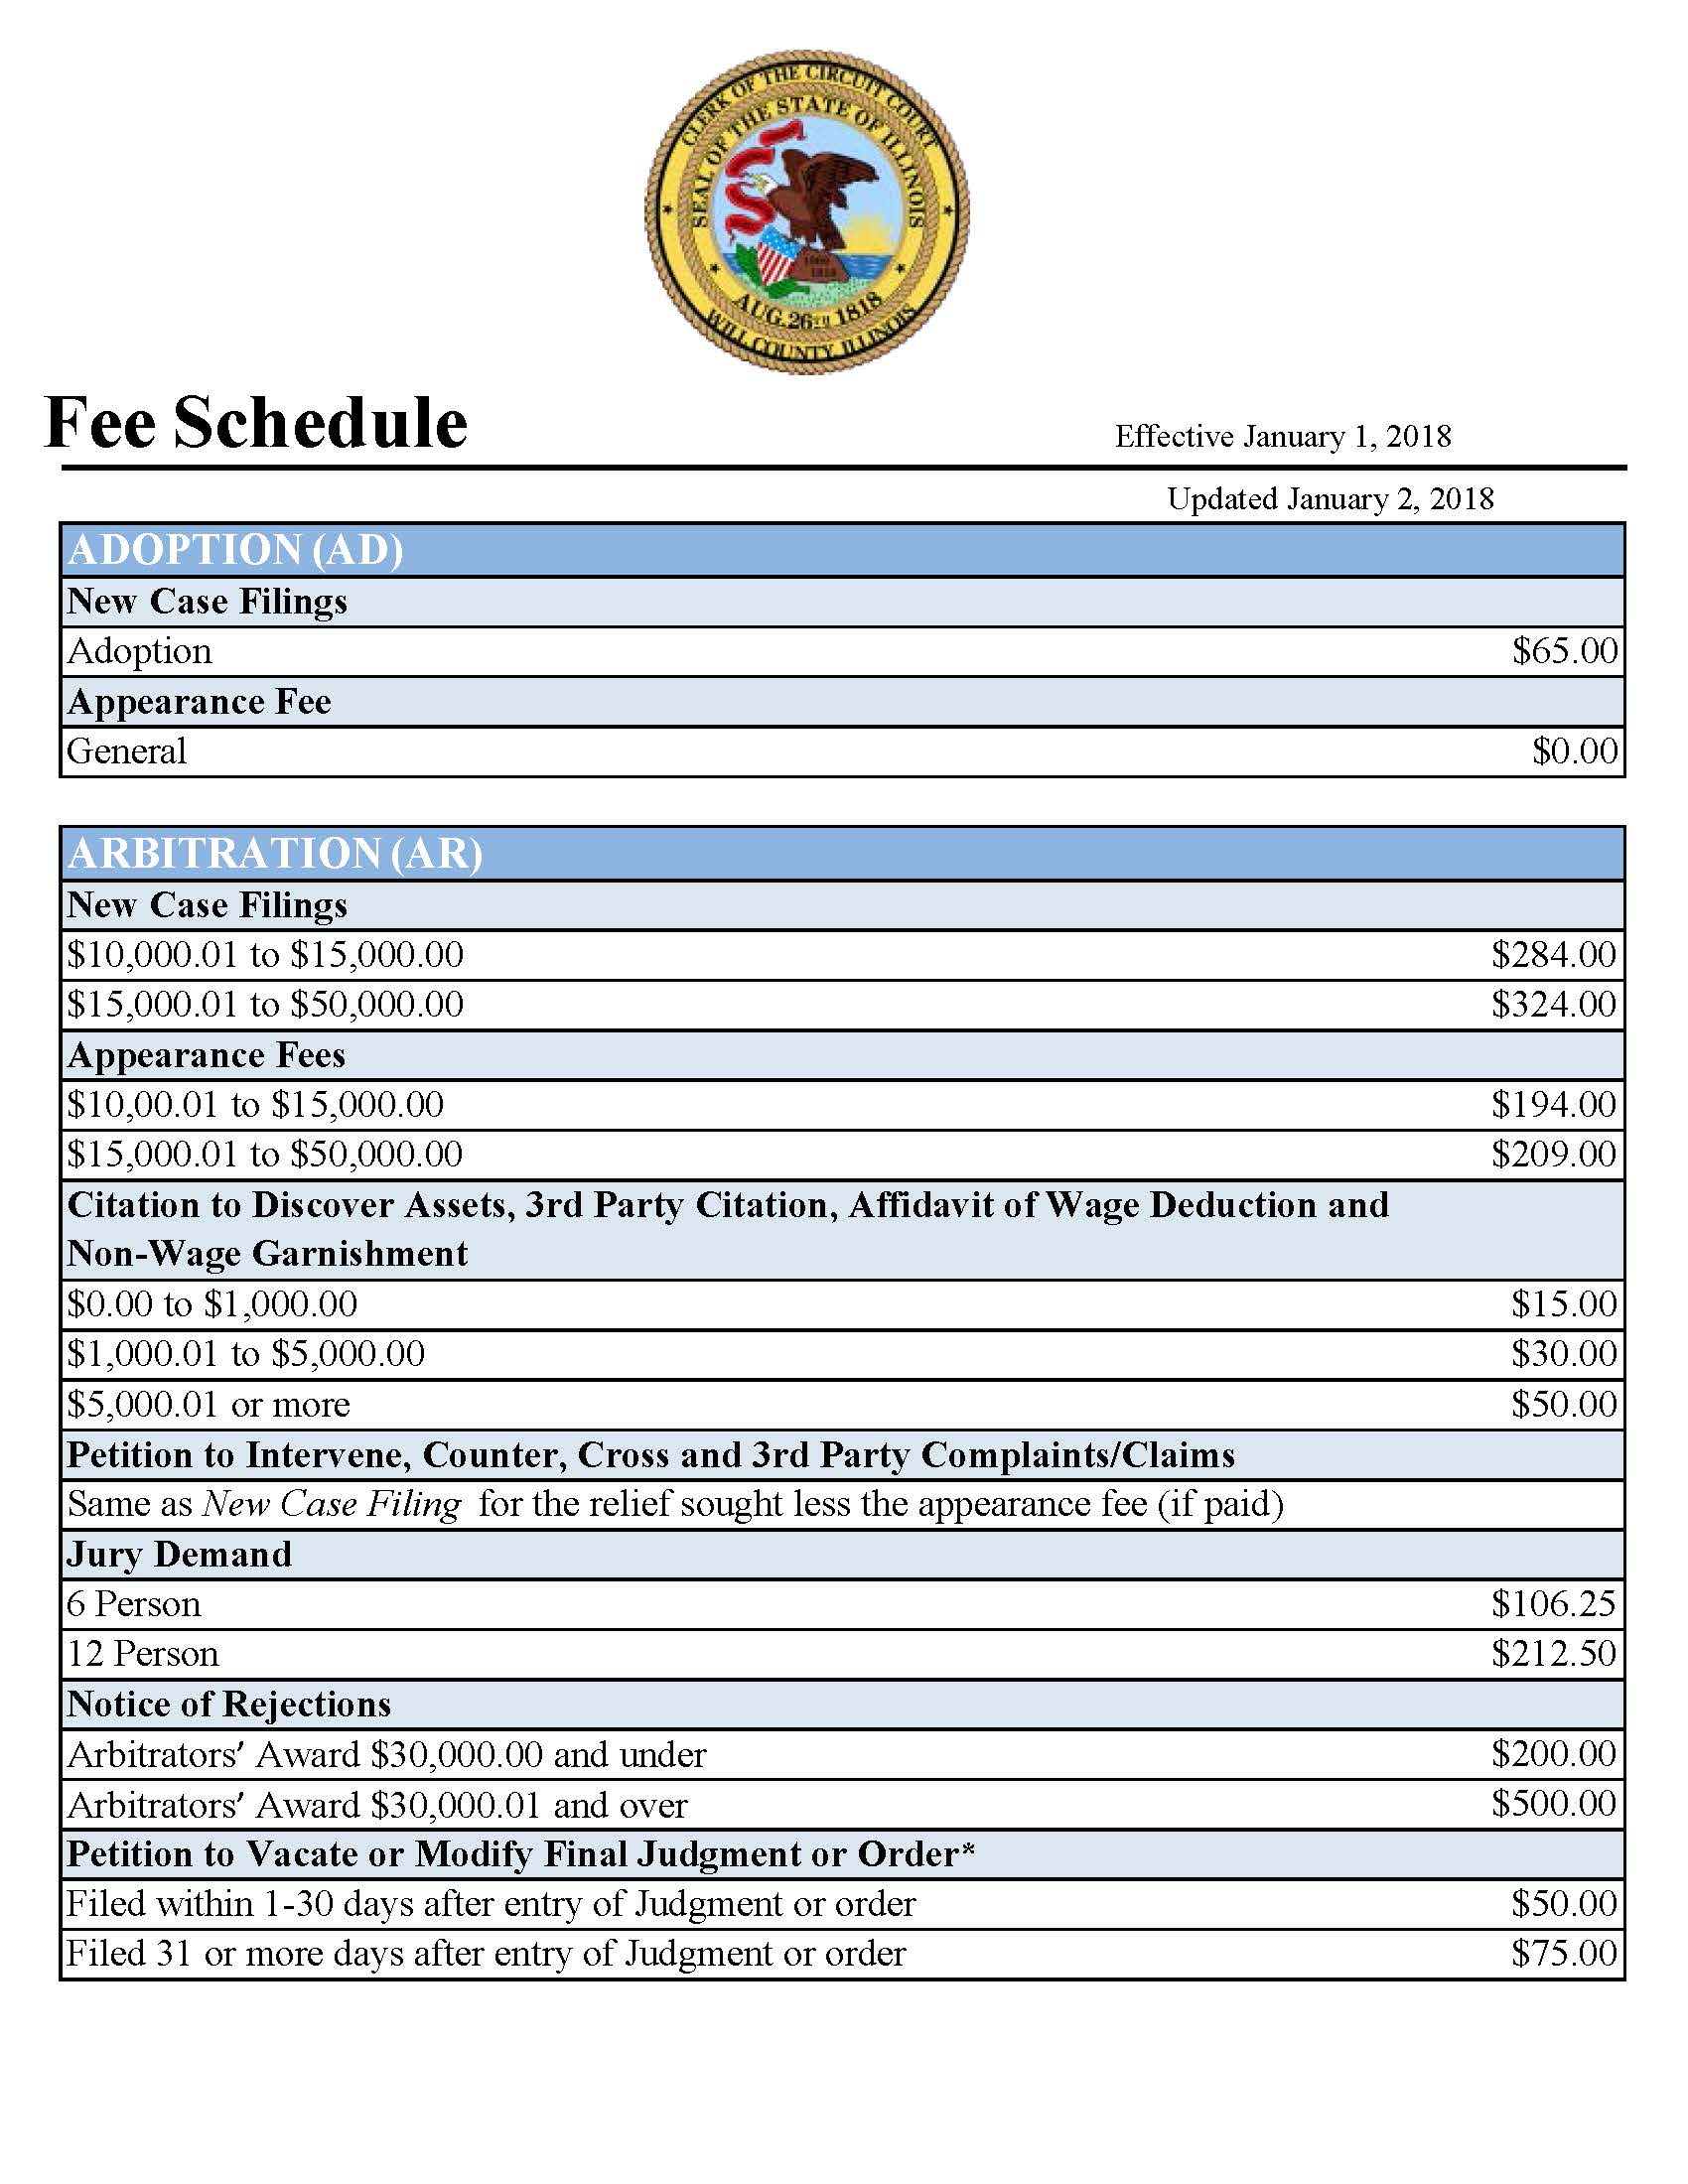 Fee schedule for Vesting certificate template